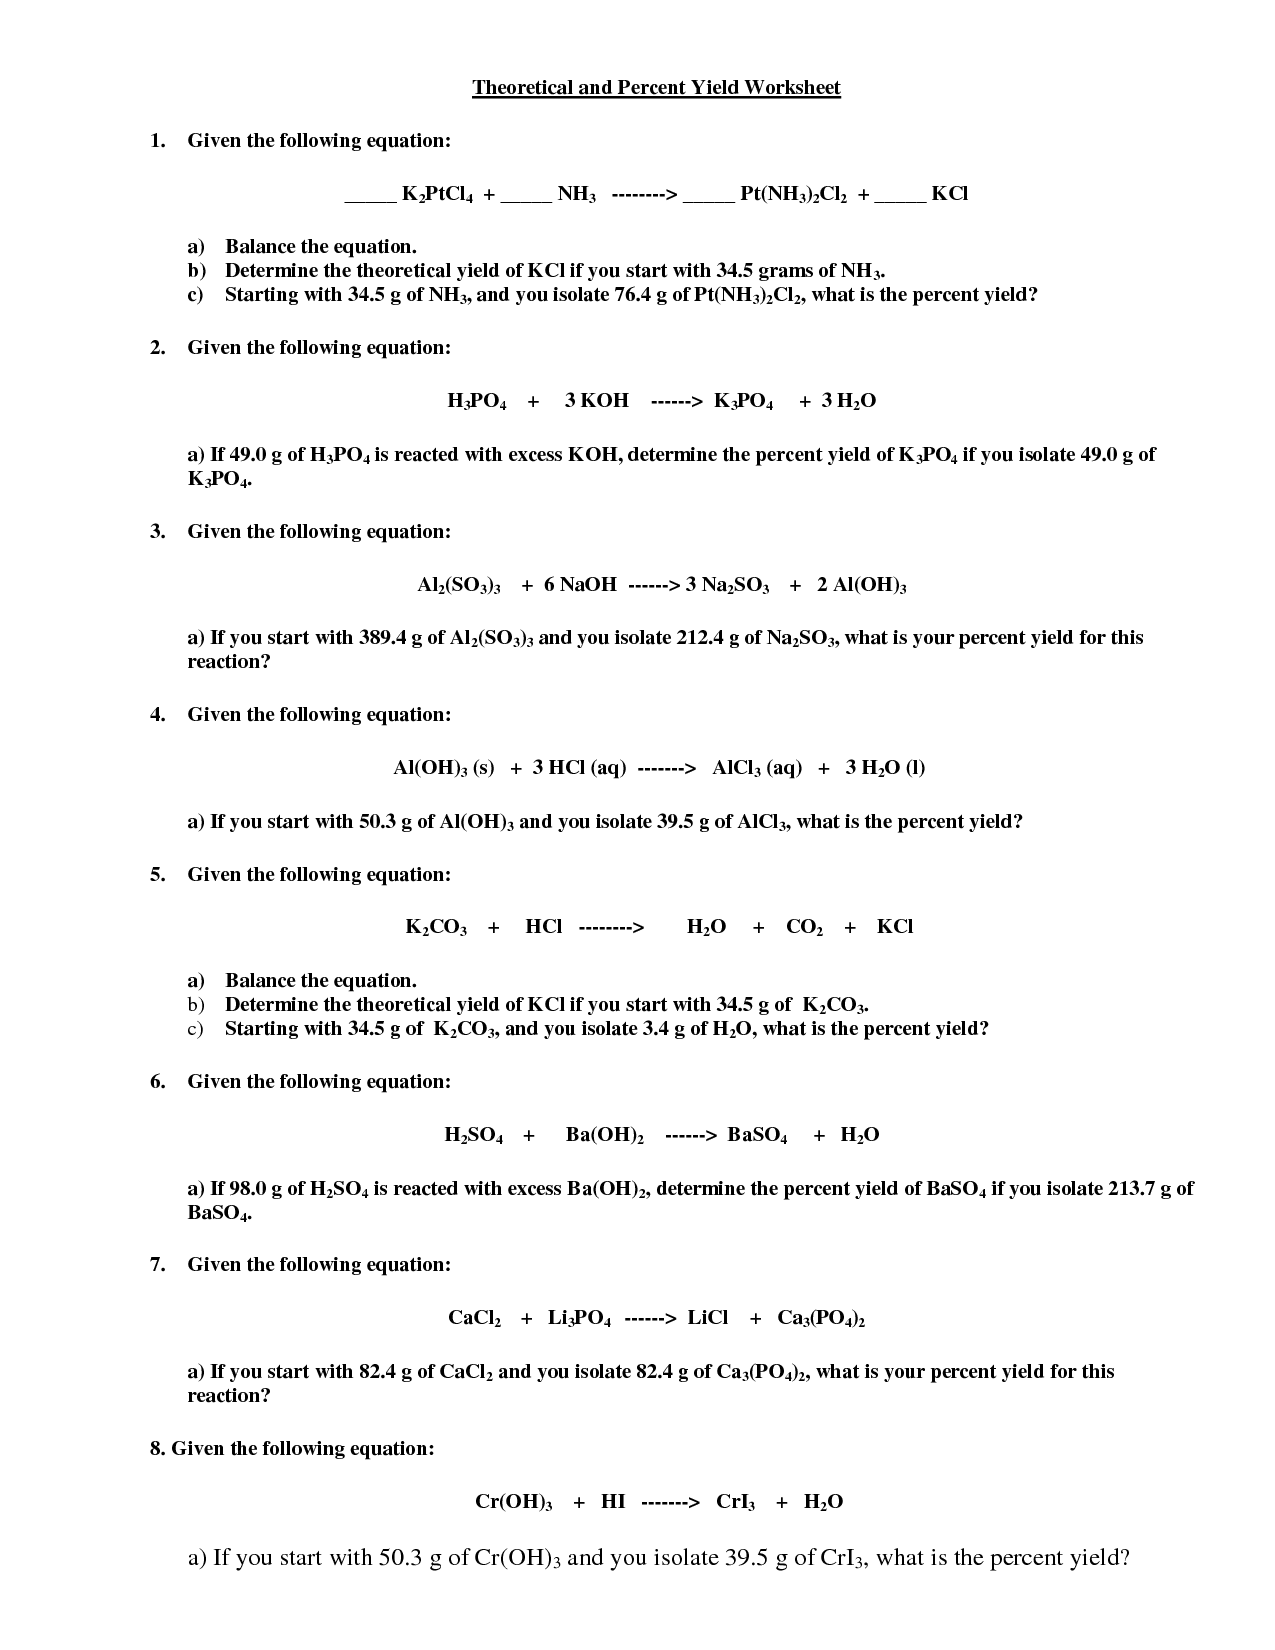 Percent Yield Worksheet With Answers